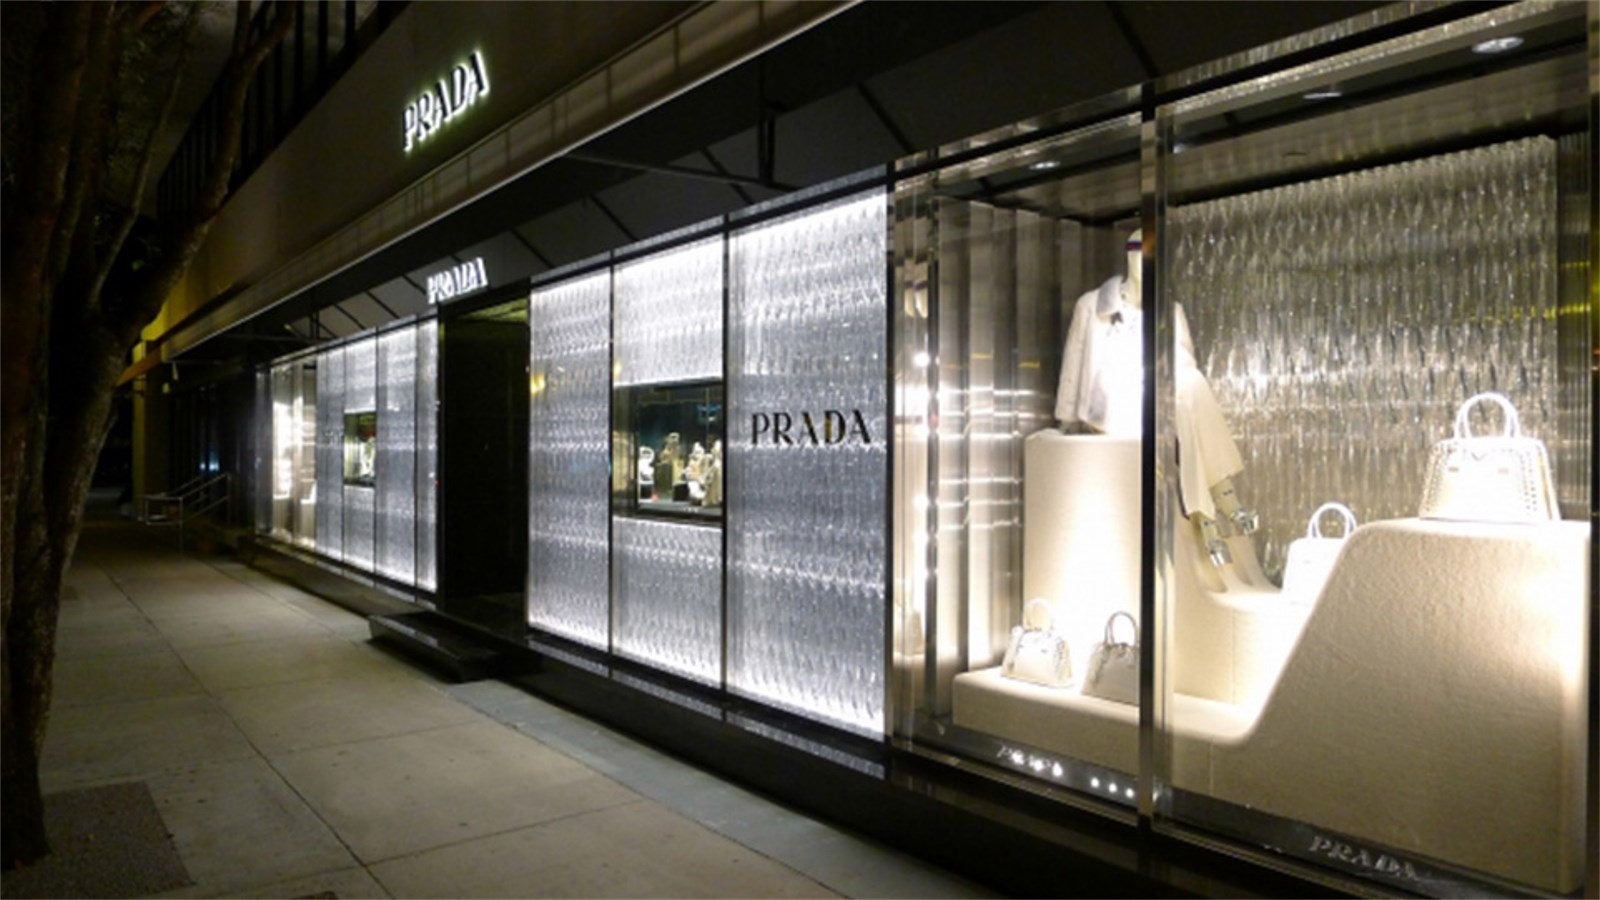 Design District Prada.jpg